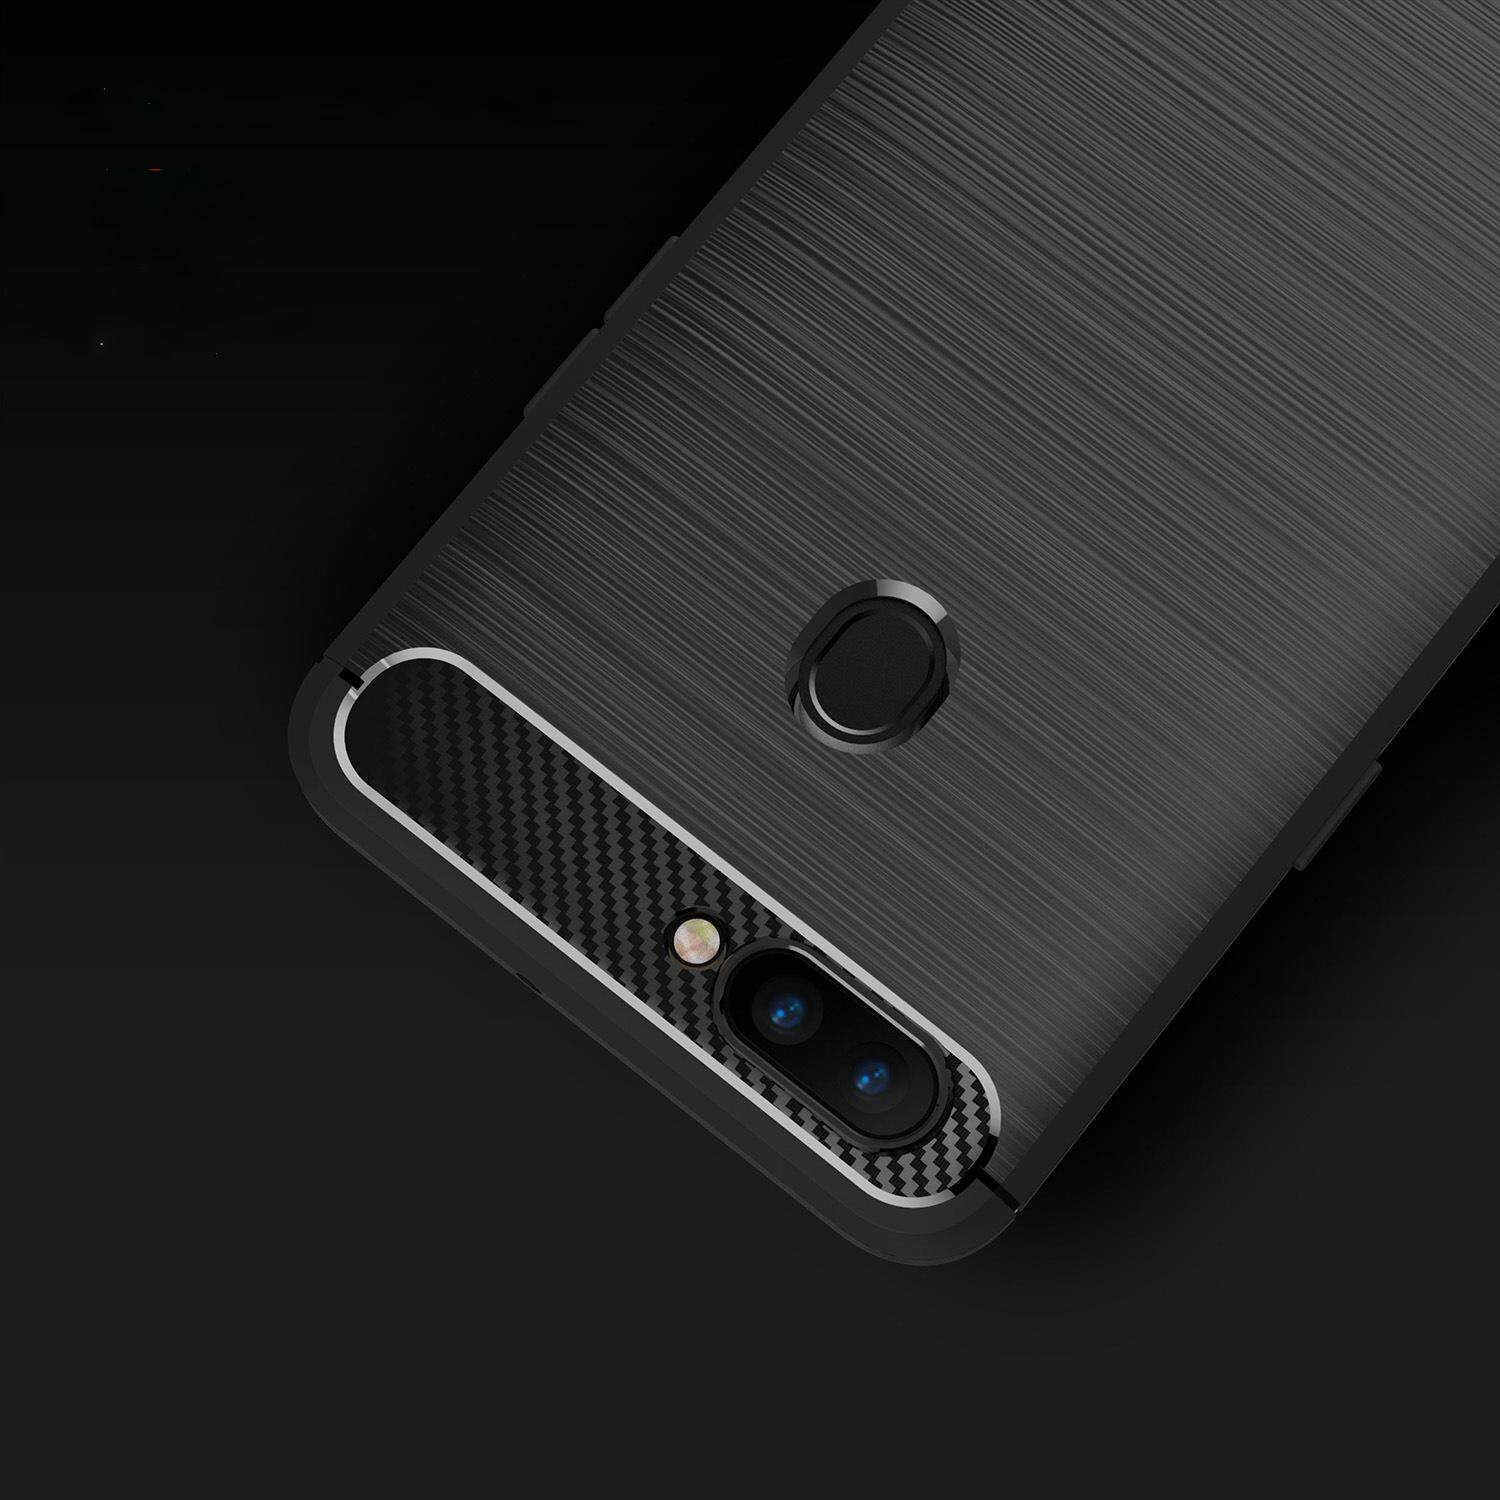 ... Oppo F7 plus Case Rugged Armor Back Cover Soft Silicone TPU Phone Case Carbon Fiber Texture ...